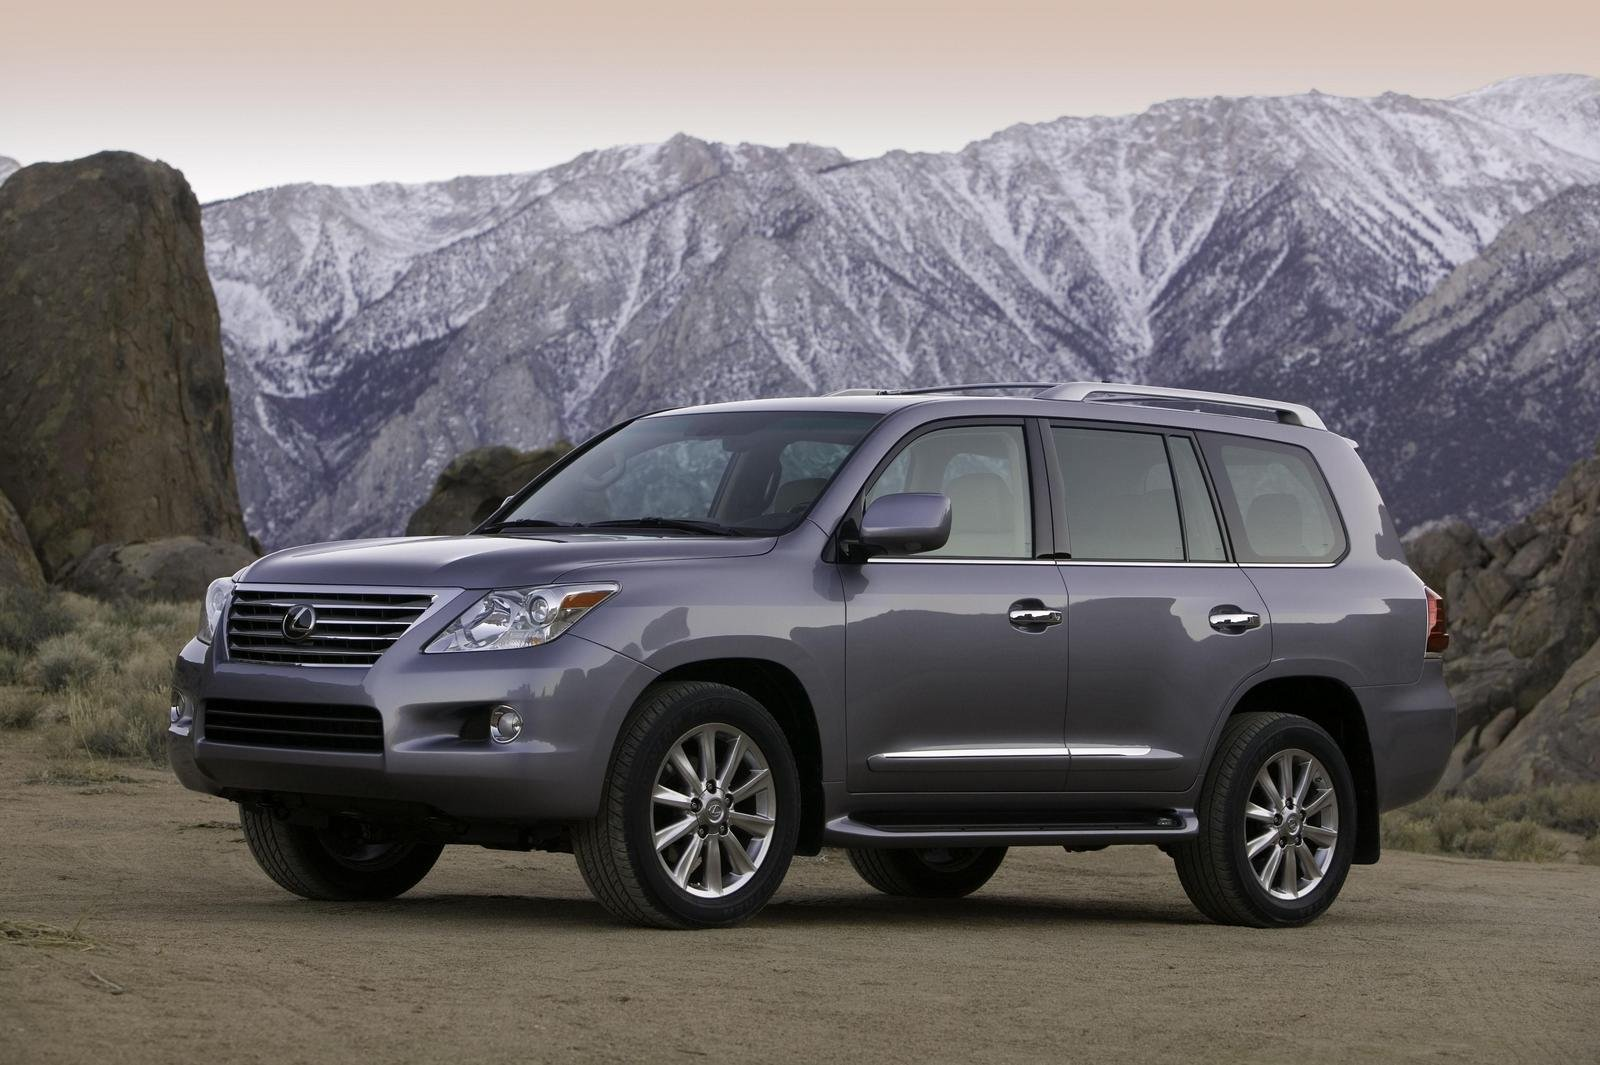 2008 Lexus Lx 570 Picture 159277 Car Review Top Speed